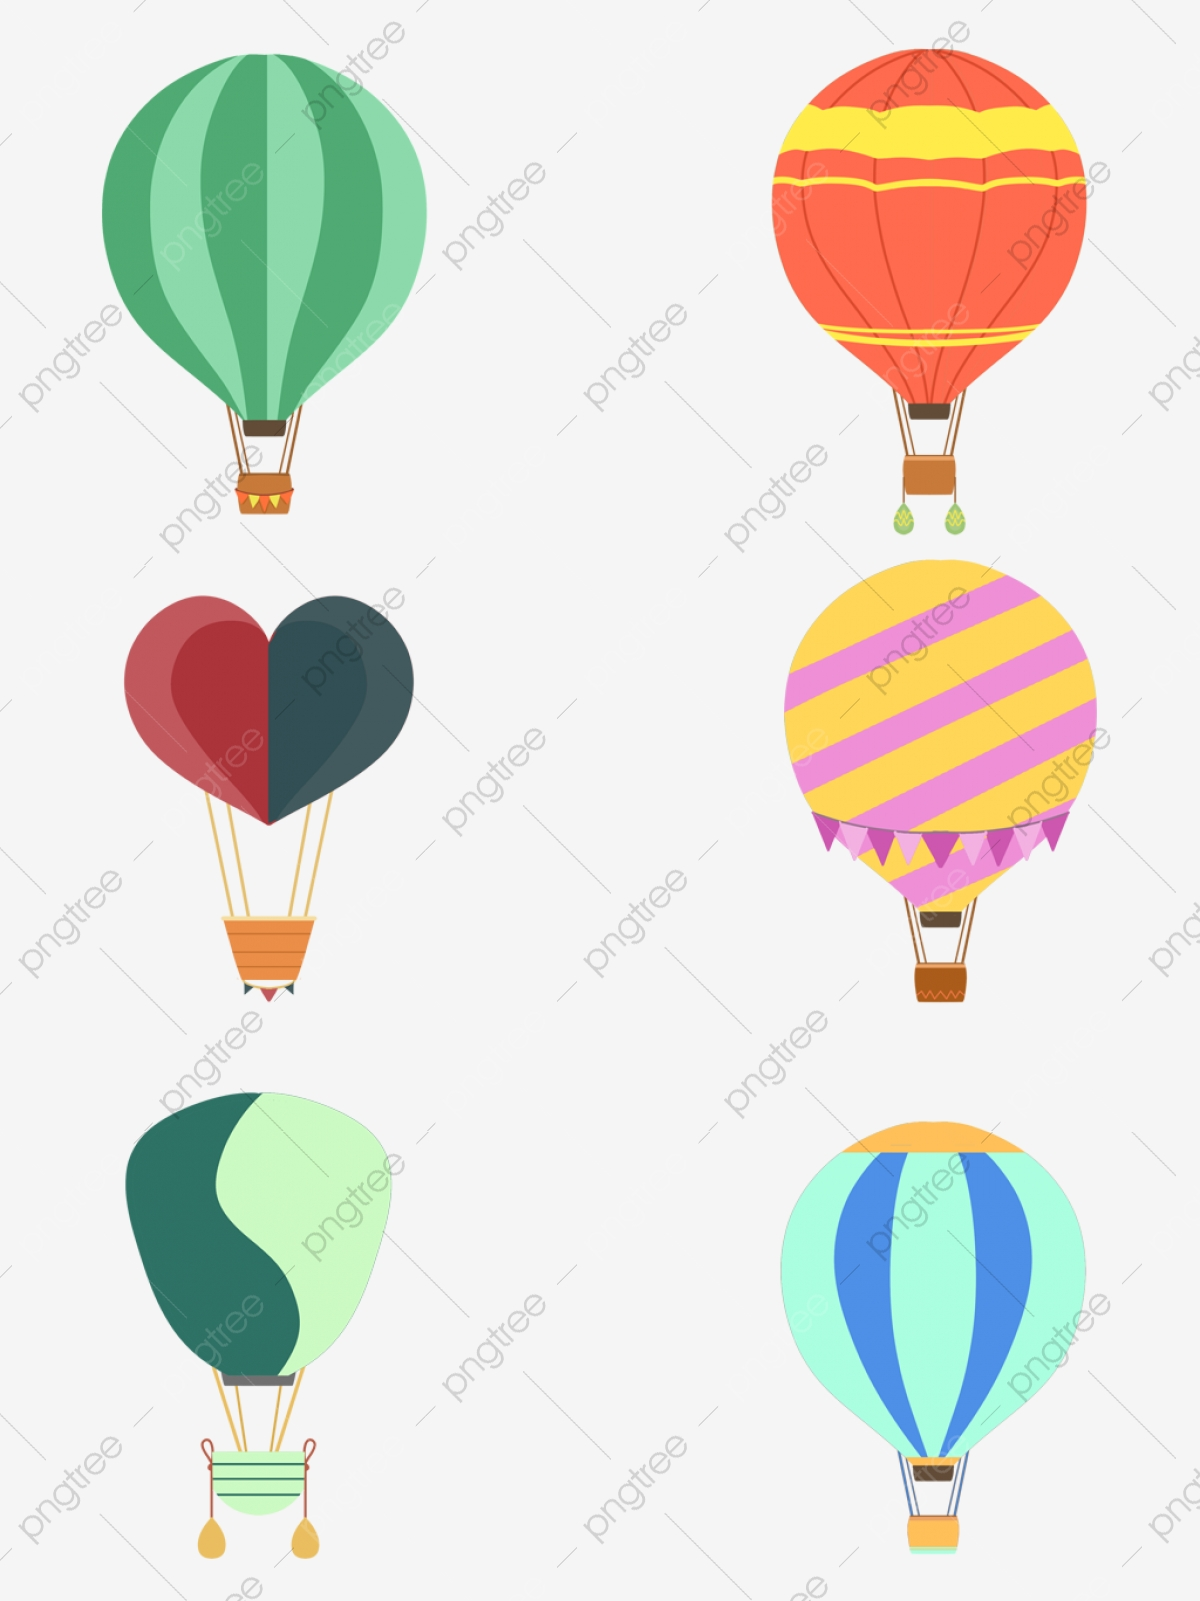 Flat Hot Air Balloon Vector Hot Air Balloon Hot Air Balloon Hot Air Balloon Illustration Png Transparent Clipart Image And Psd File For Free Download